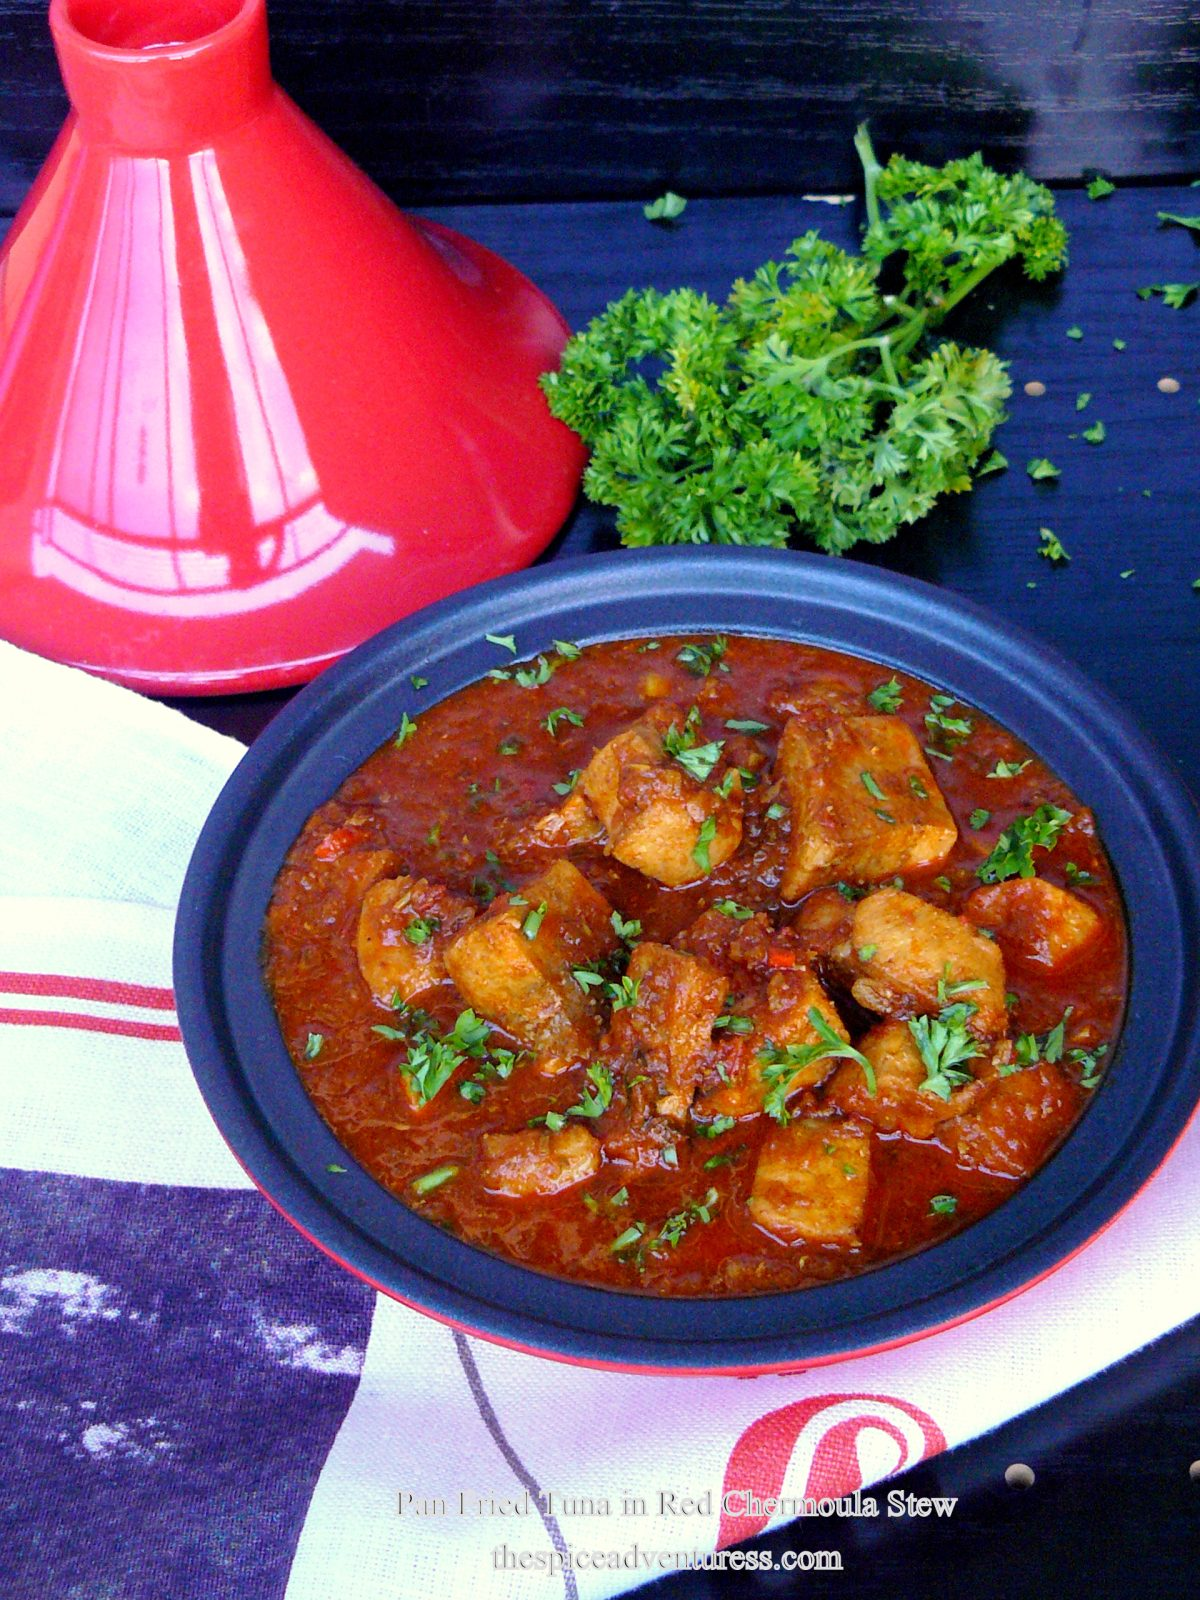 Pan Fried Tuna in Red Chermoula Stew - an Indo-Moroccan fusion dish - thespiceadventuress.com